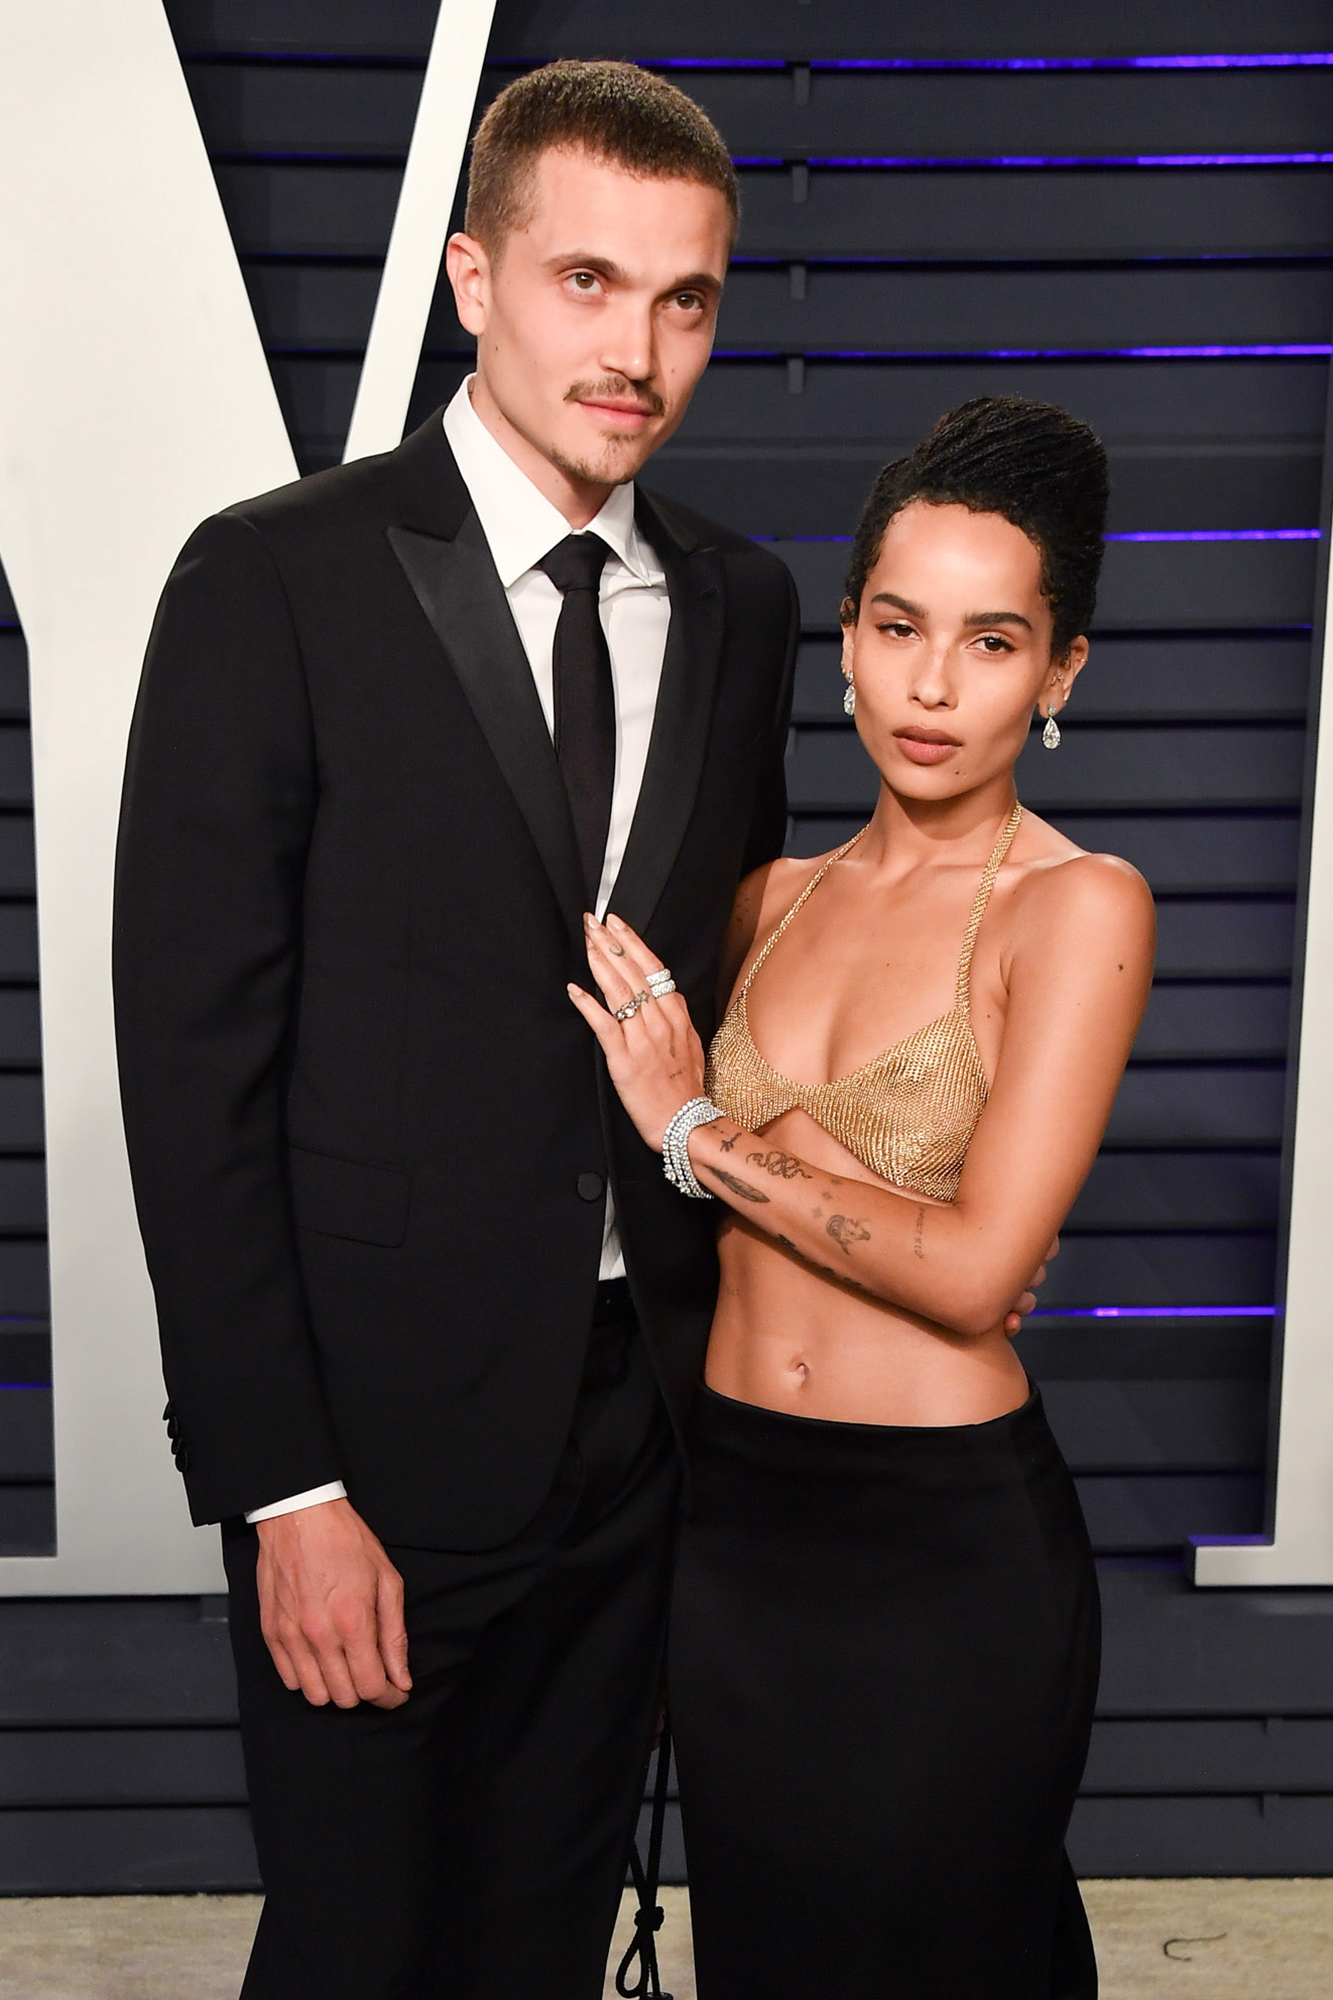 Zoe Kravitz Marries Karl Glusman In France After Secret Wedding